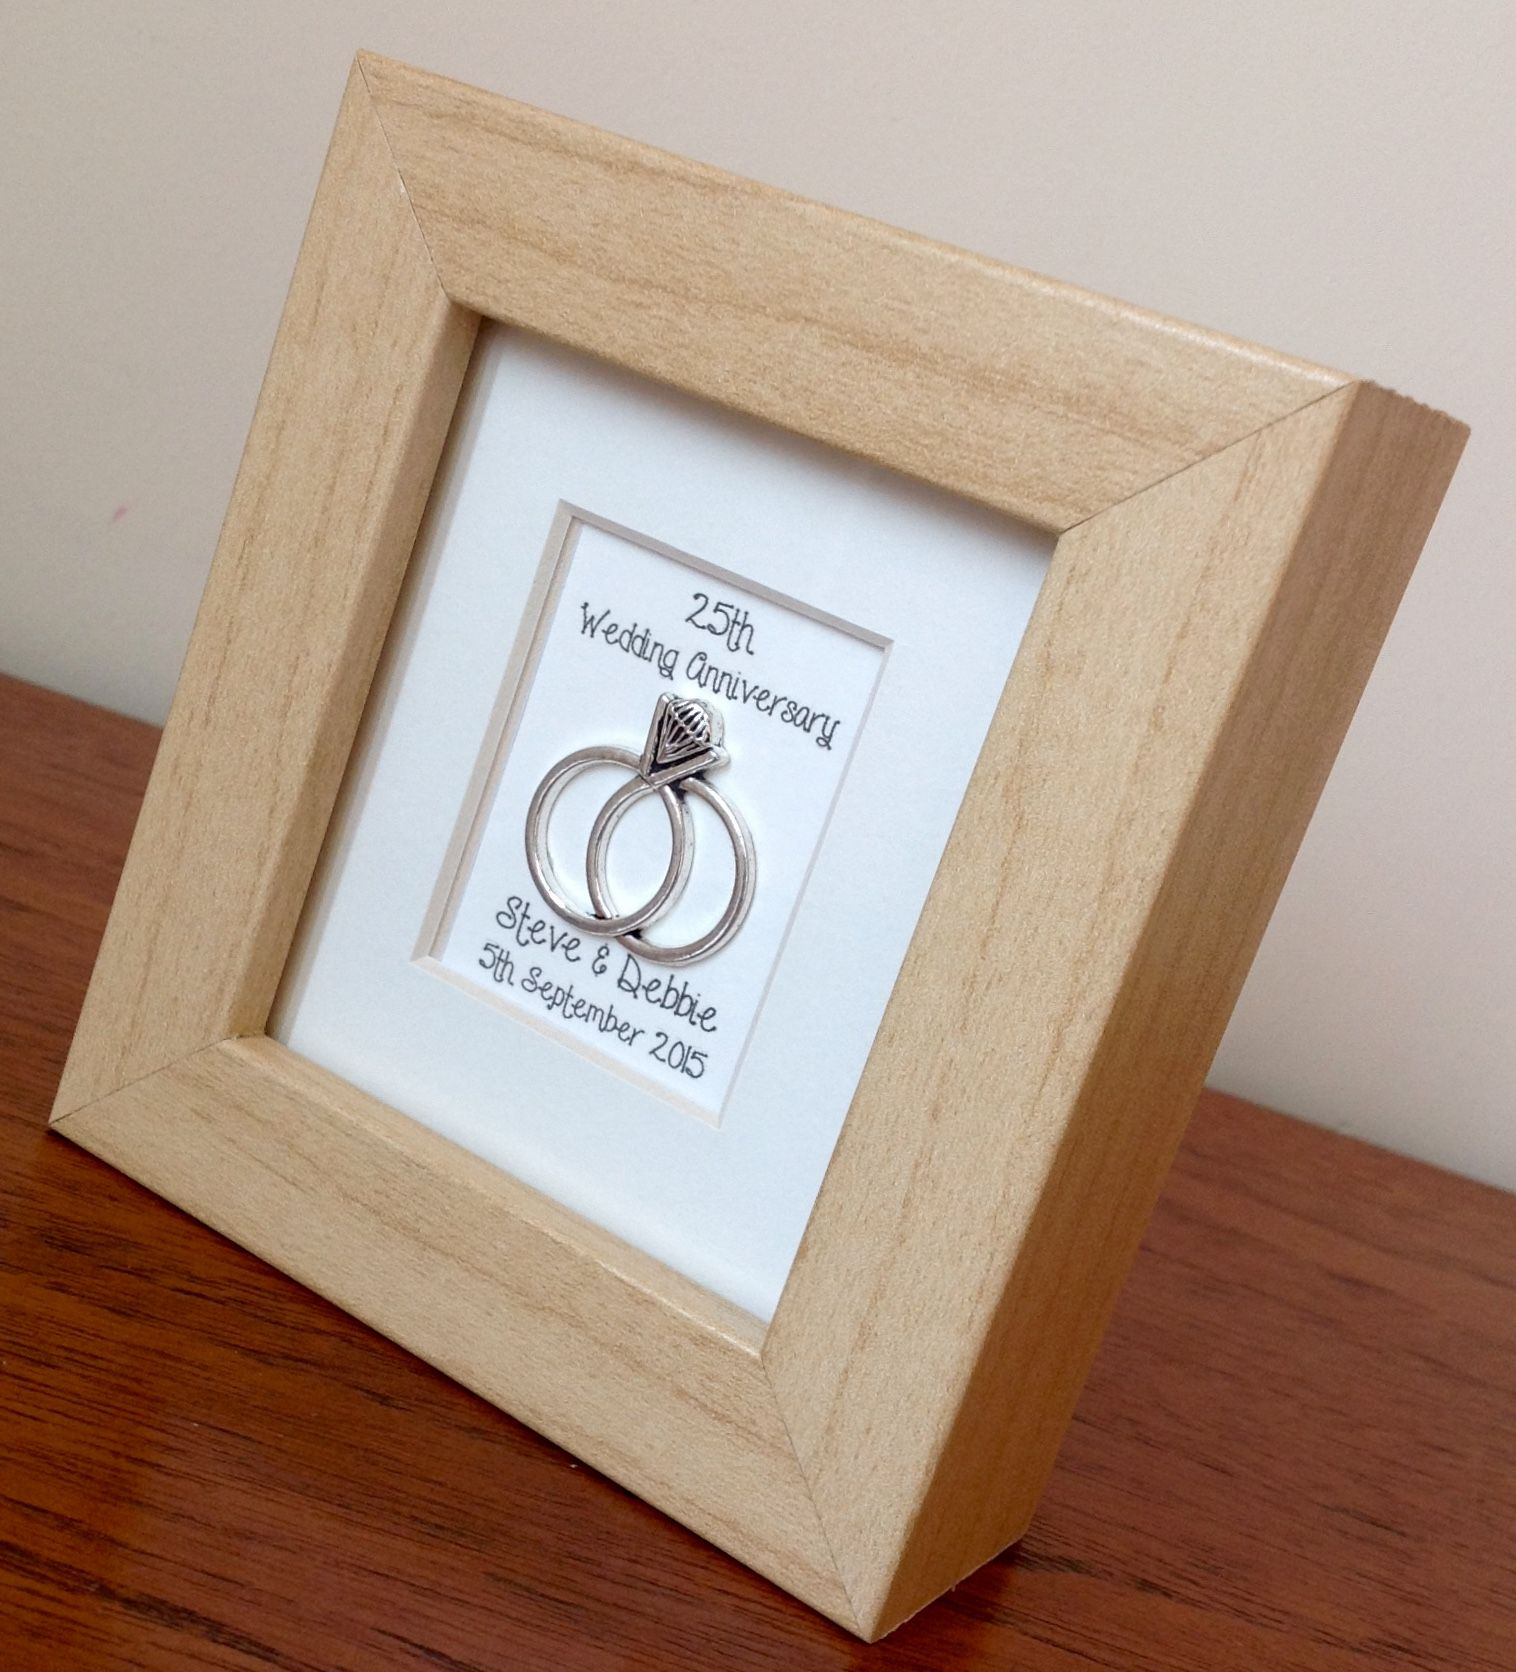 25th Wedding Anniversary Gift Frame Personalised. www